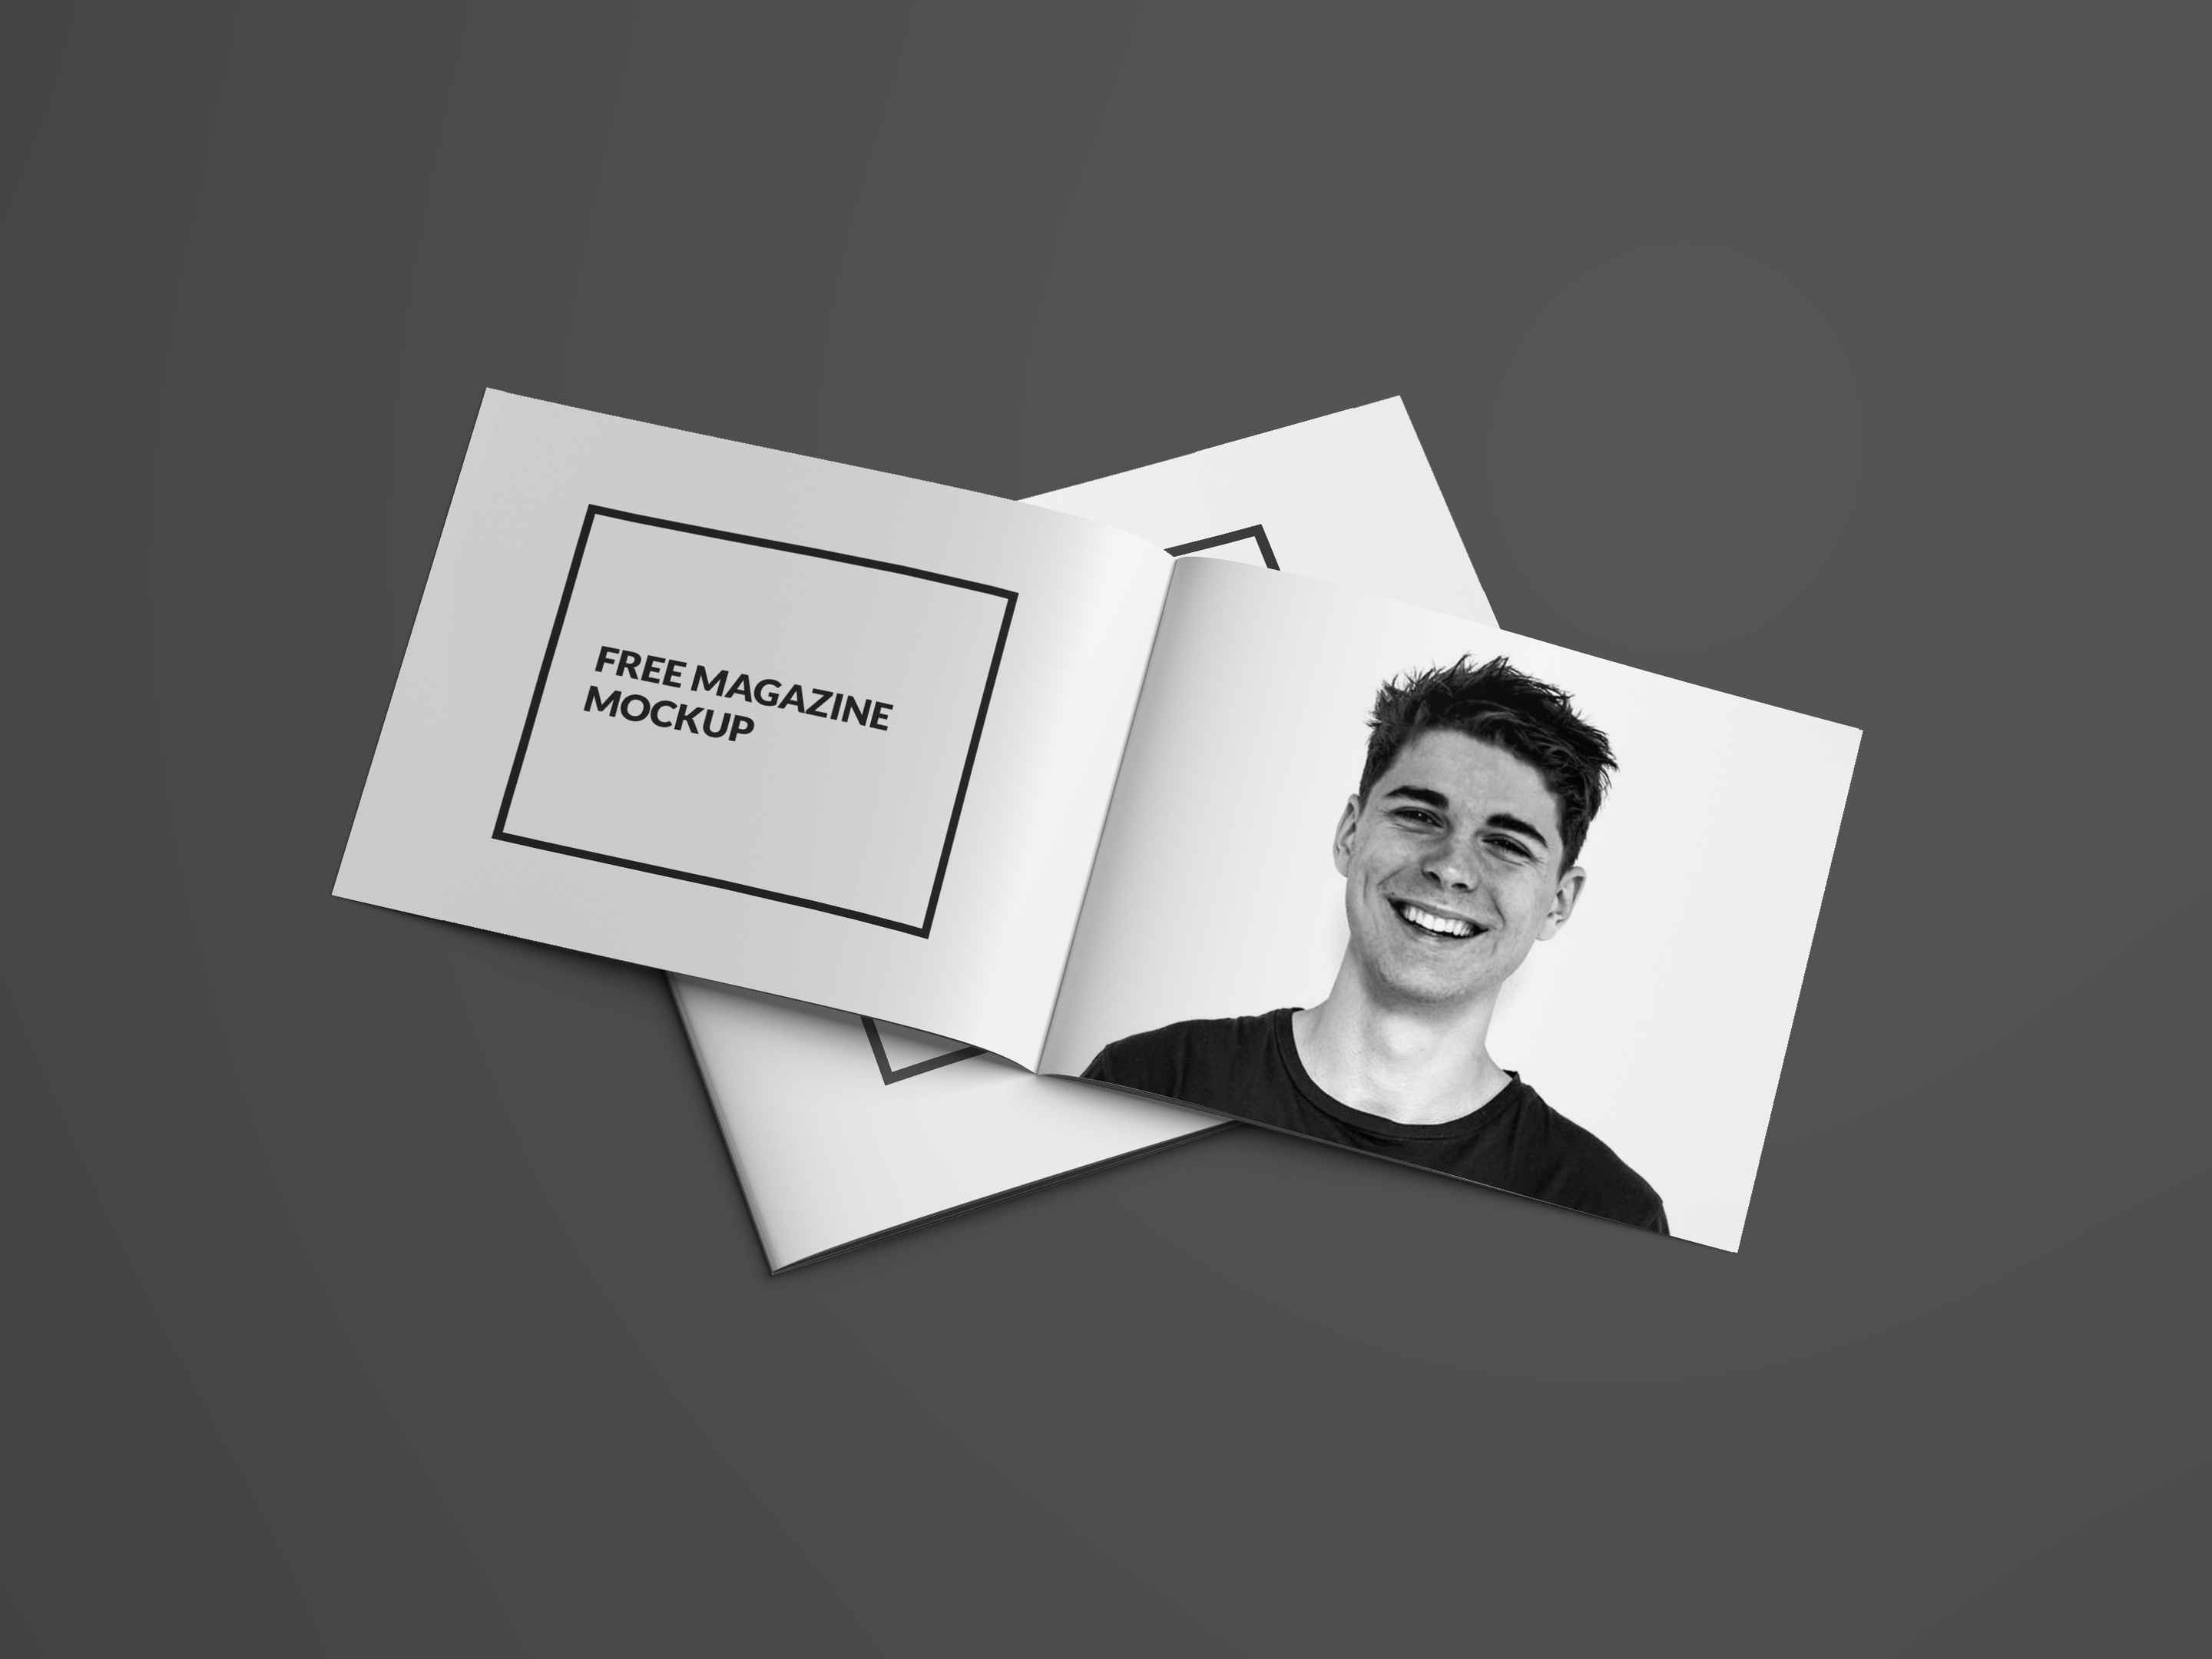 Free Magazine Mockup PSD Open and Cover PSD Mockups Free